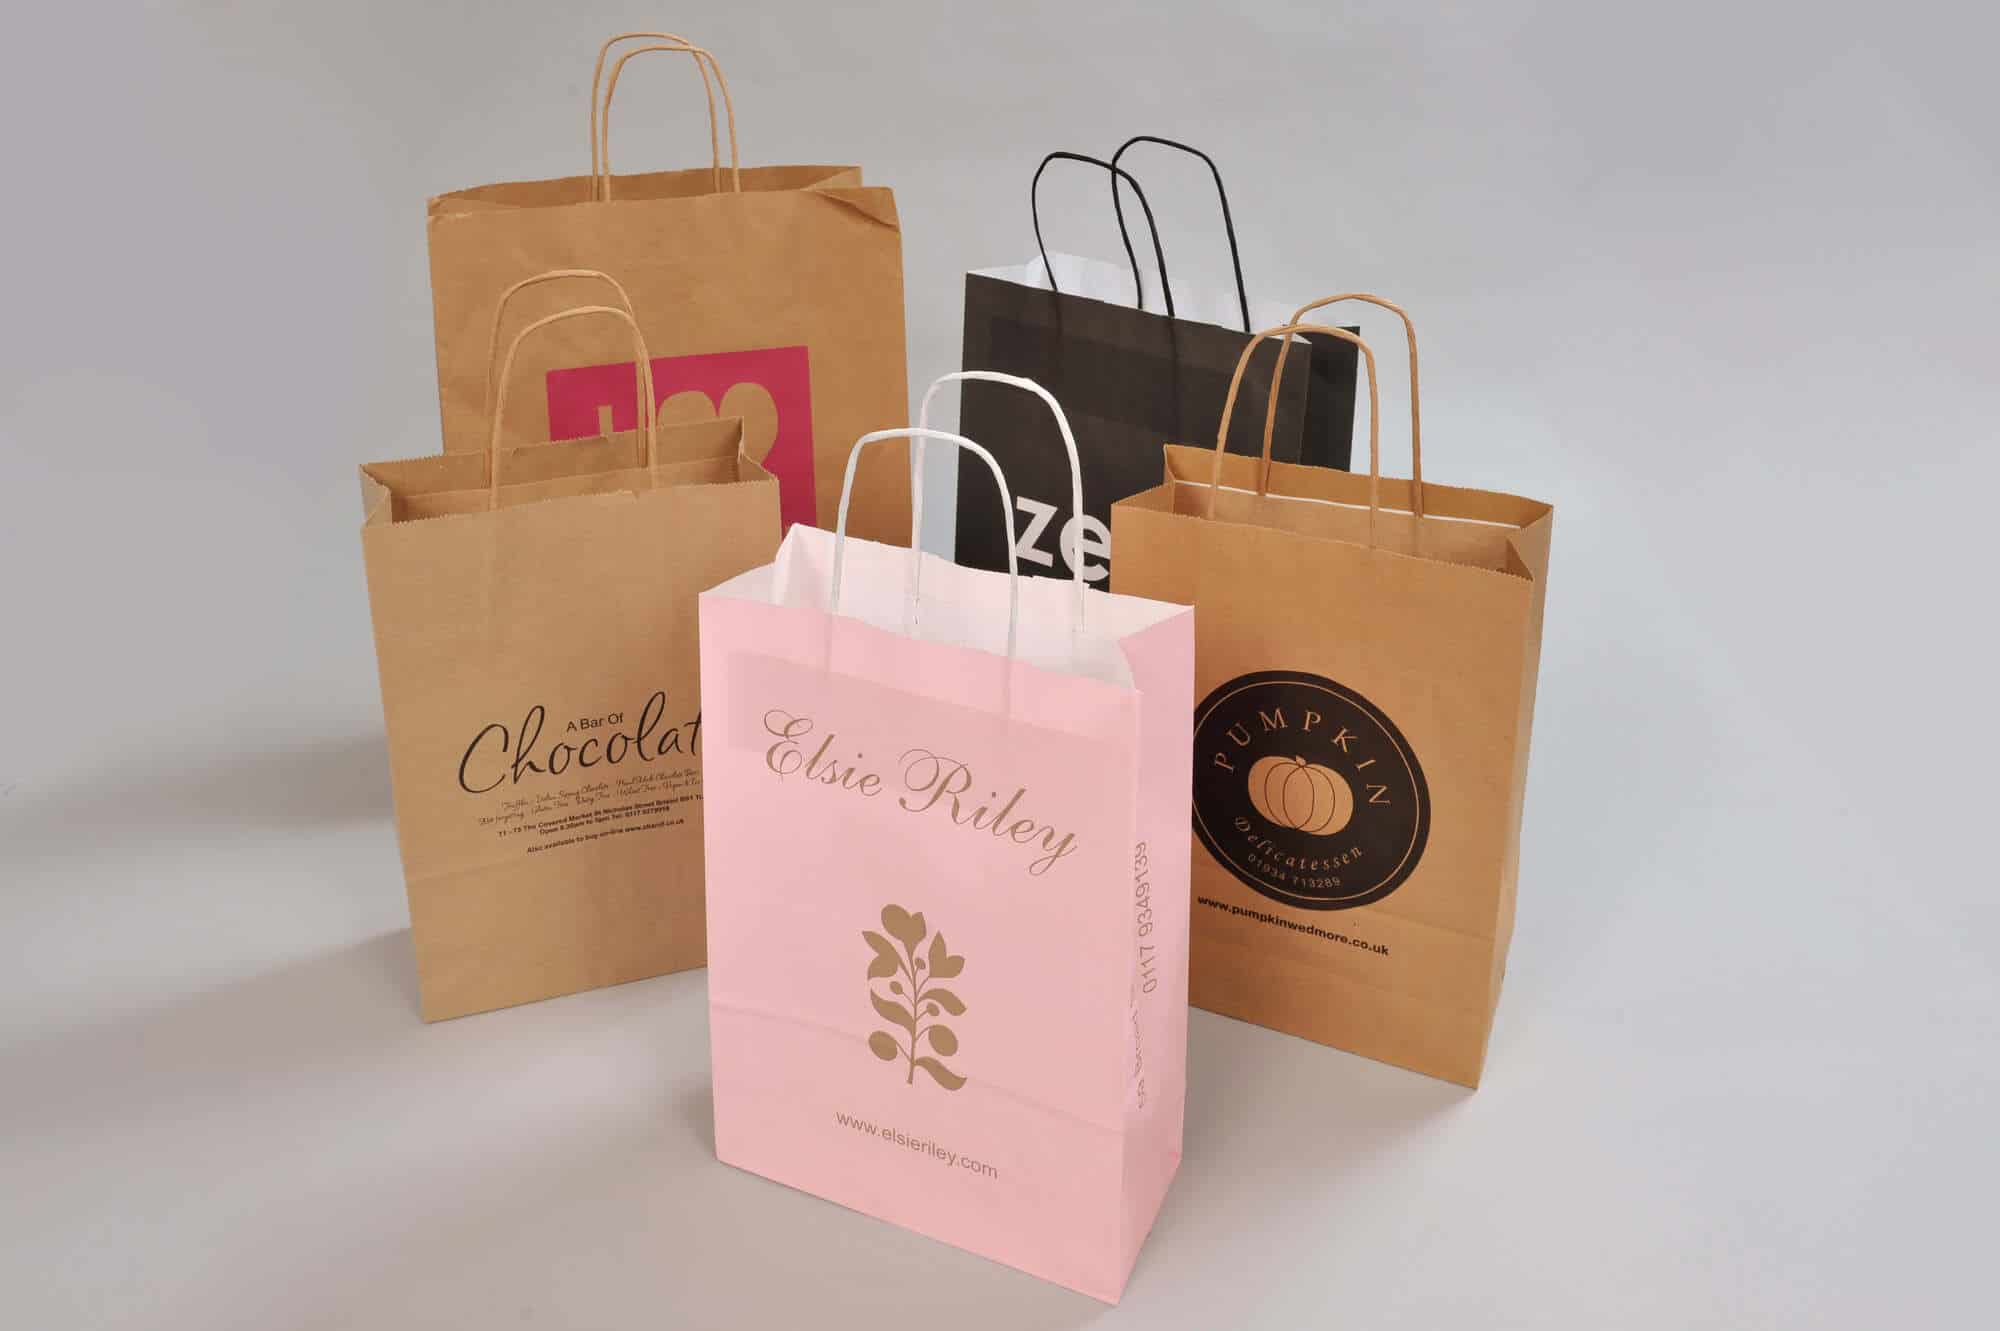 Twisted handled bags